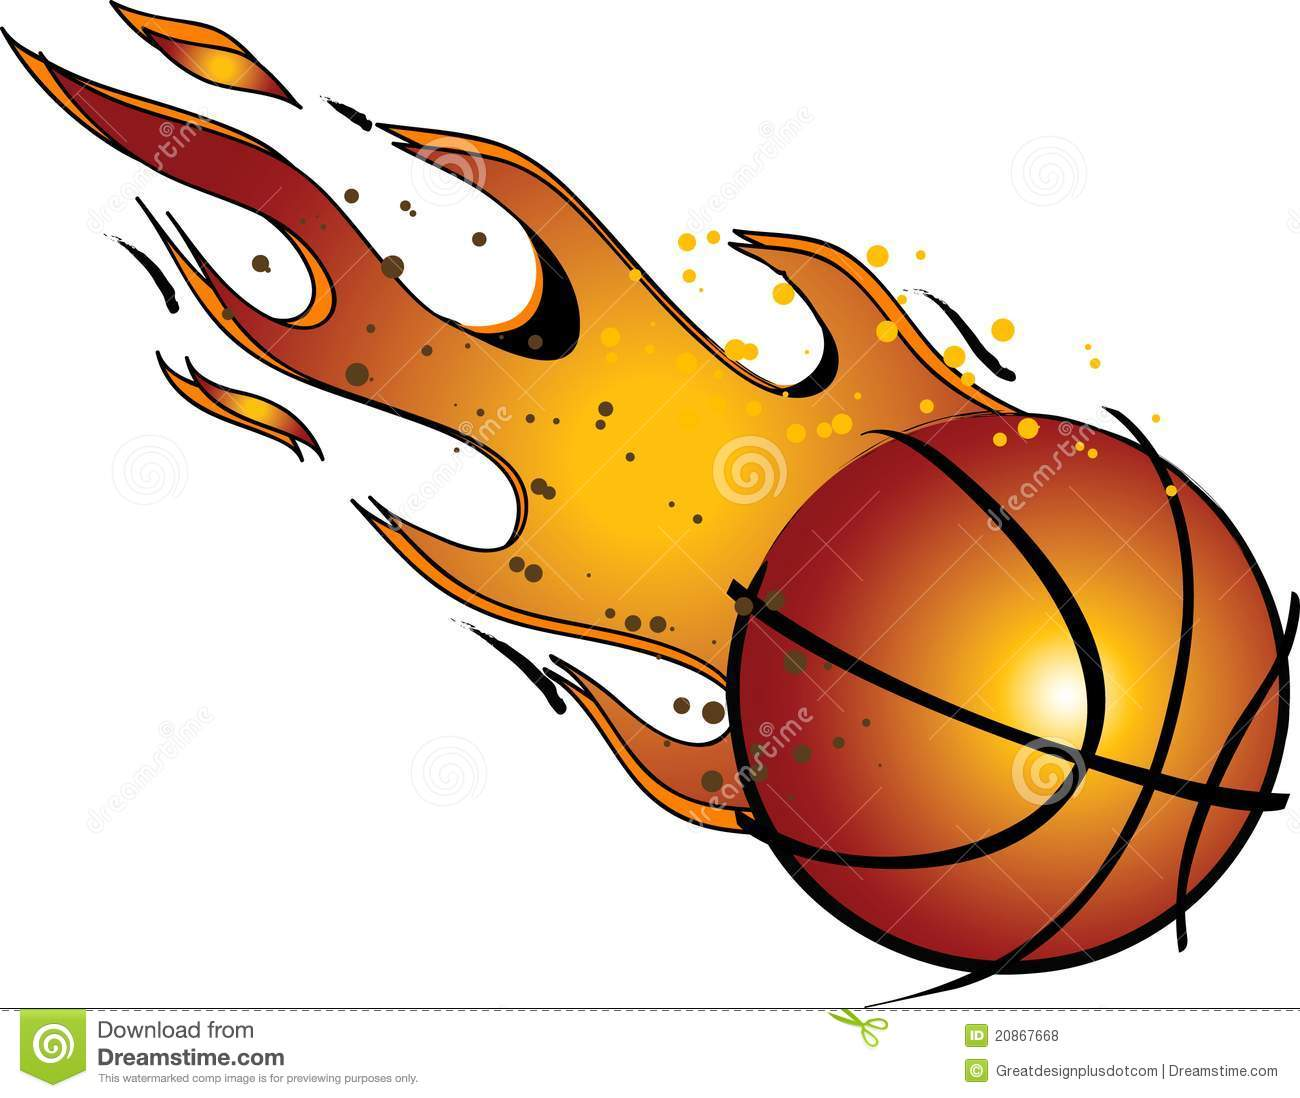 Flaming basketball clipart png Flaming Basketball Clipart - Clipart Kid png